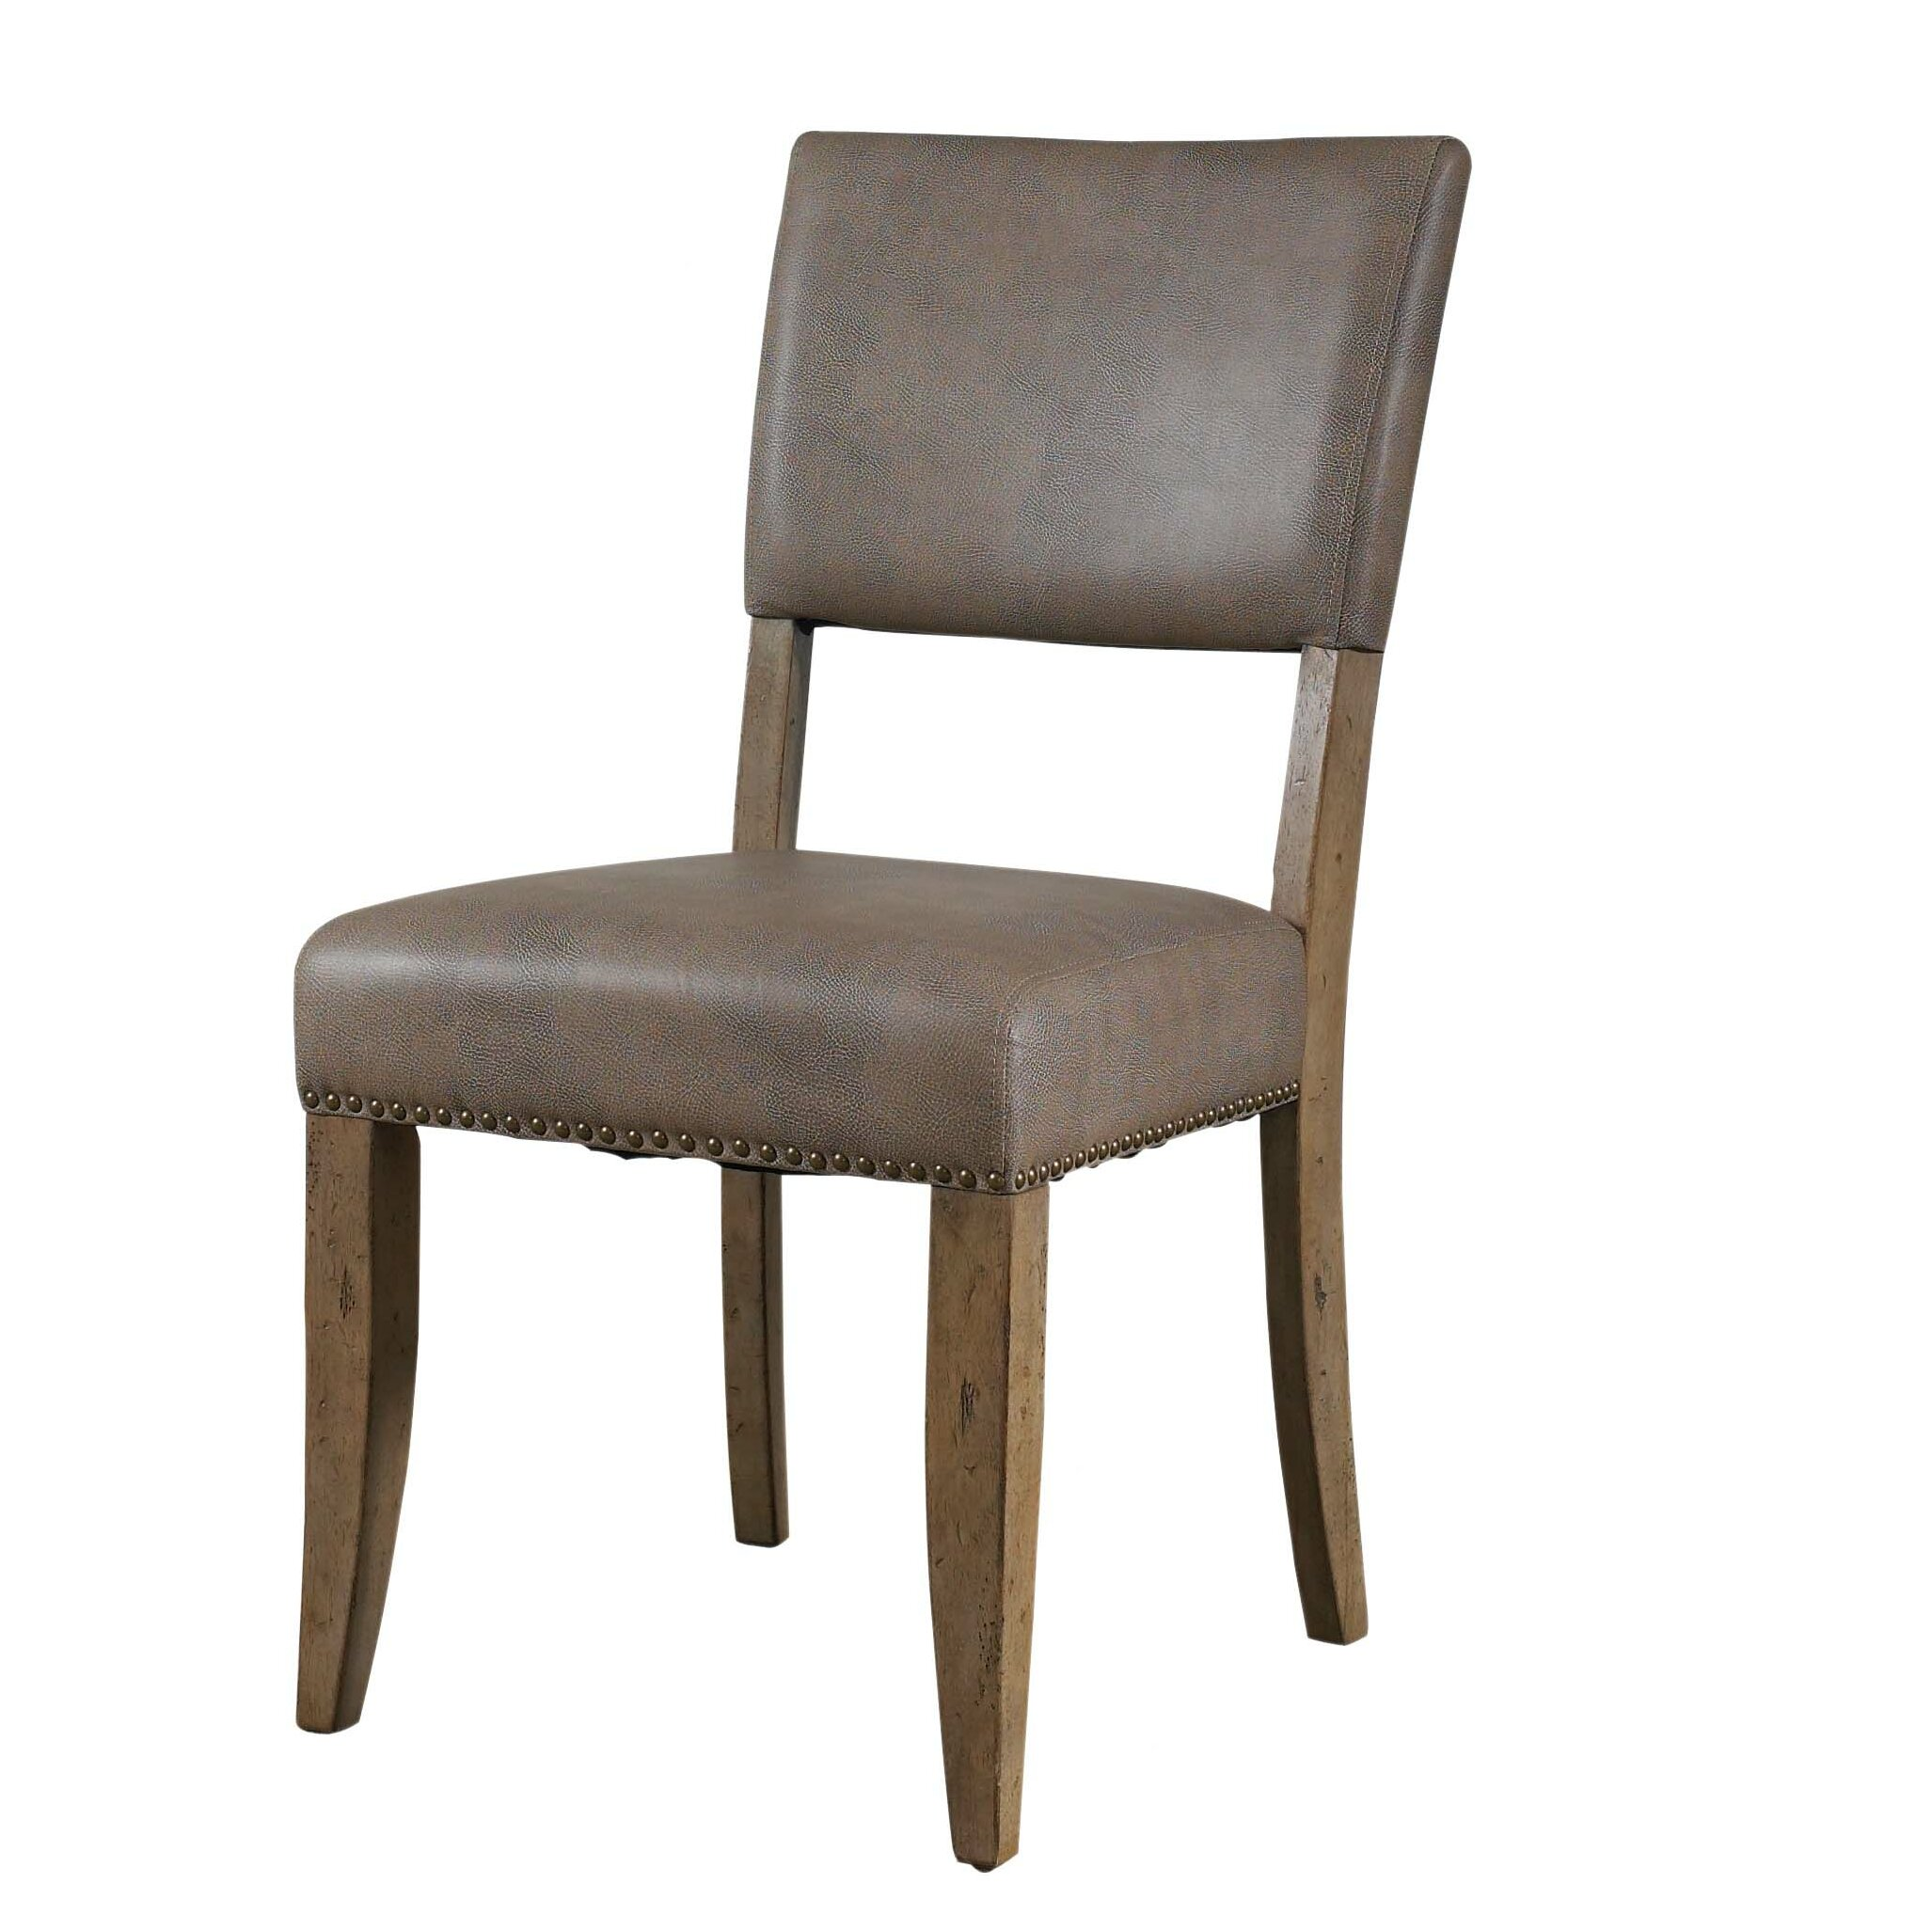 Hillsdale charleston side chair reviews wayfair for Furniture 2 day shipping